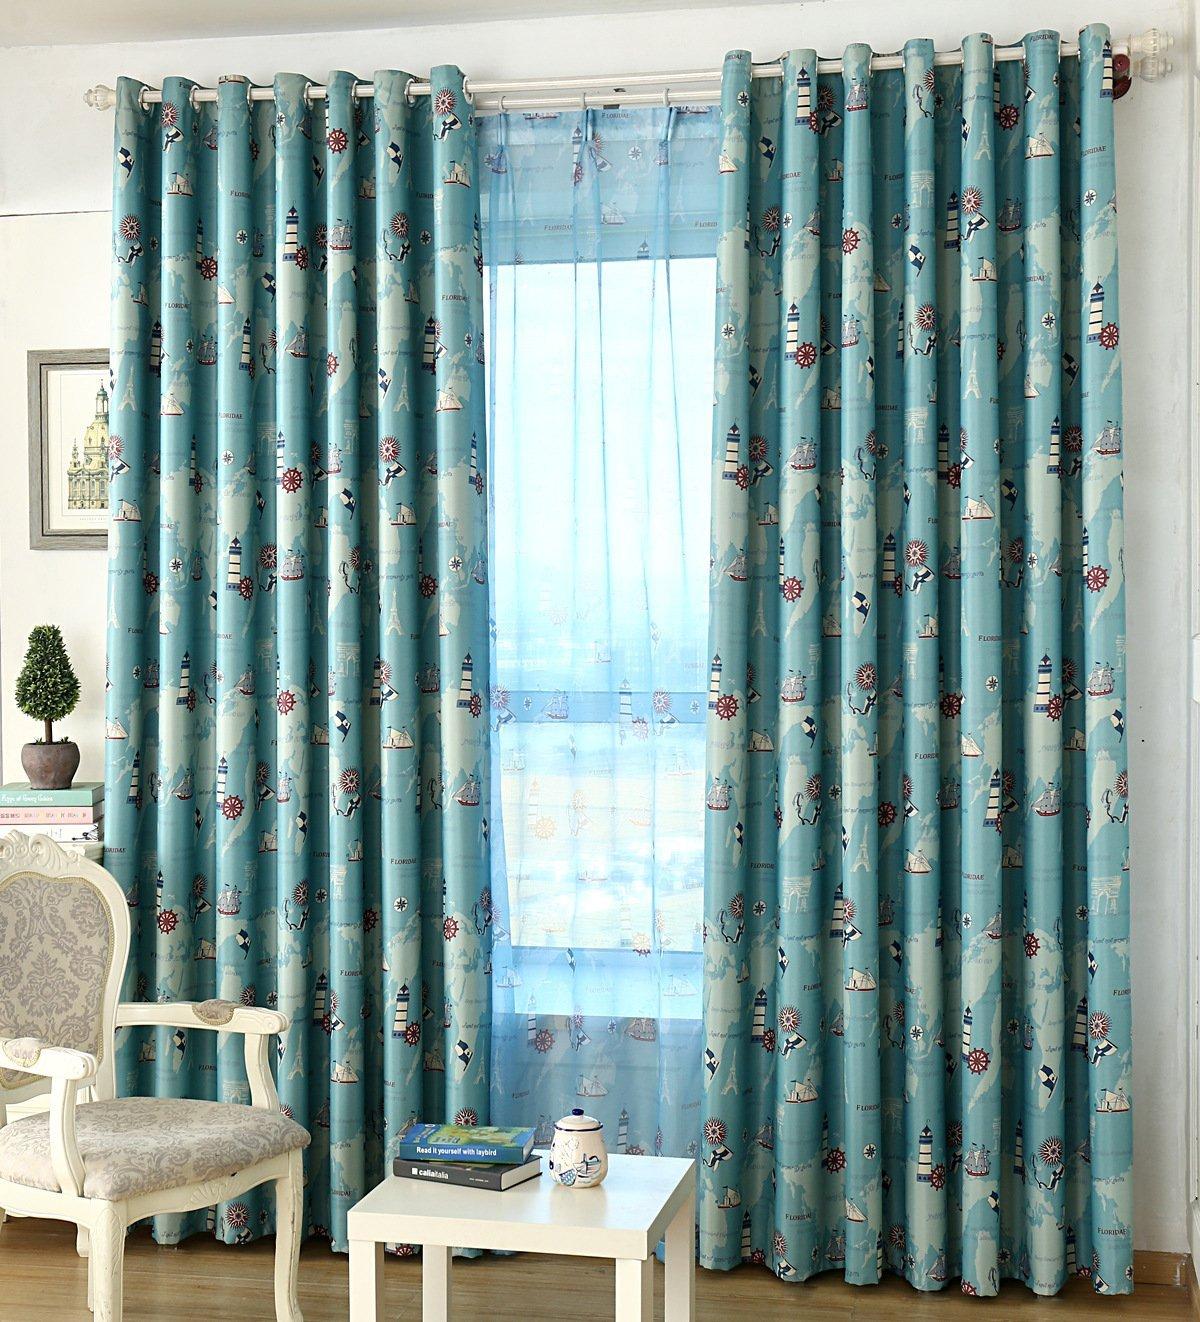 ZWB Room Darkening Window Treatment Kids Children Room Grommet Top Blackout Curtains Thermal Insulated Nautical Vessel Rudder Panel for Children Boys Bedroom Living Room 1 Panel W39 x L63 Inch